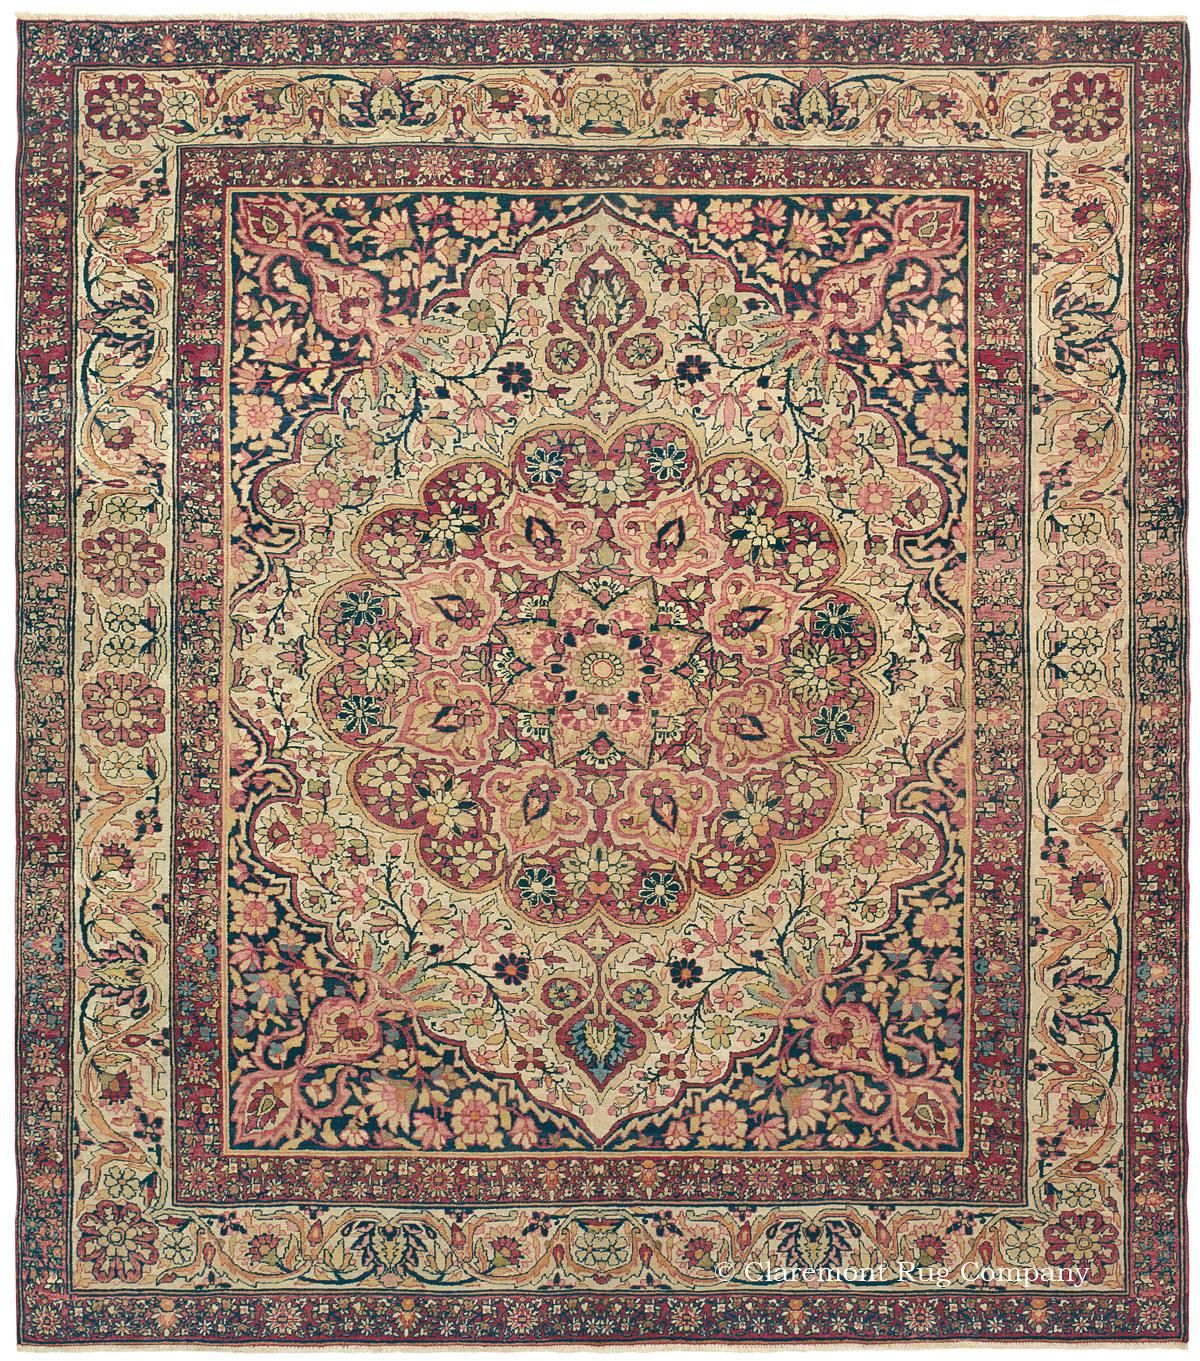 LAVER KIRMAN, Southeast Persian, 7ft 1in X 8ft 3in, Late